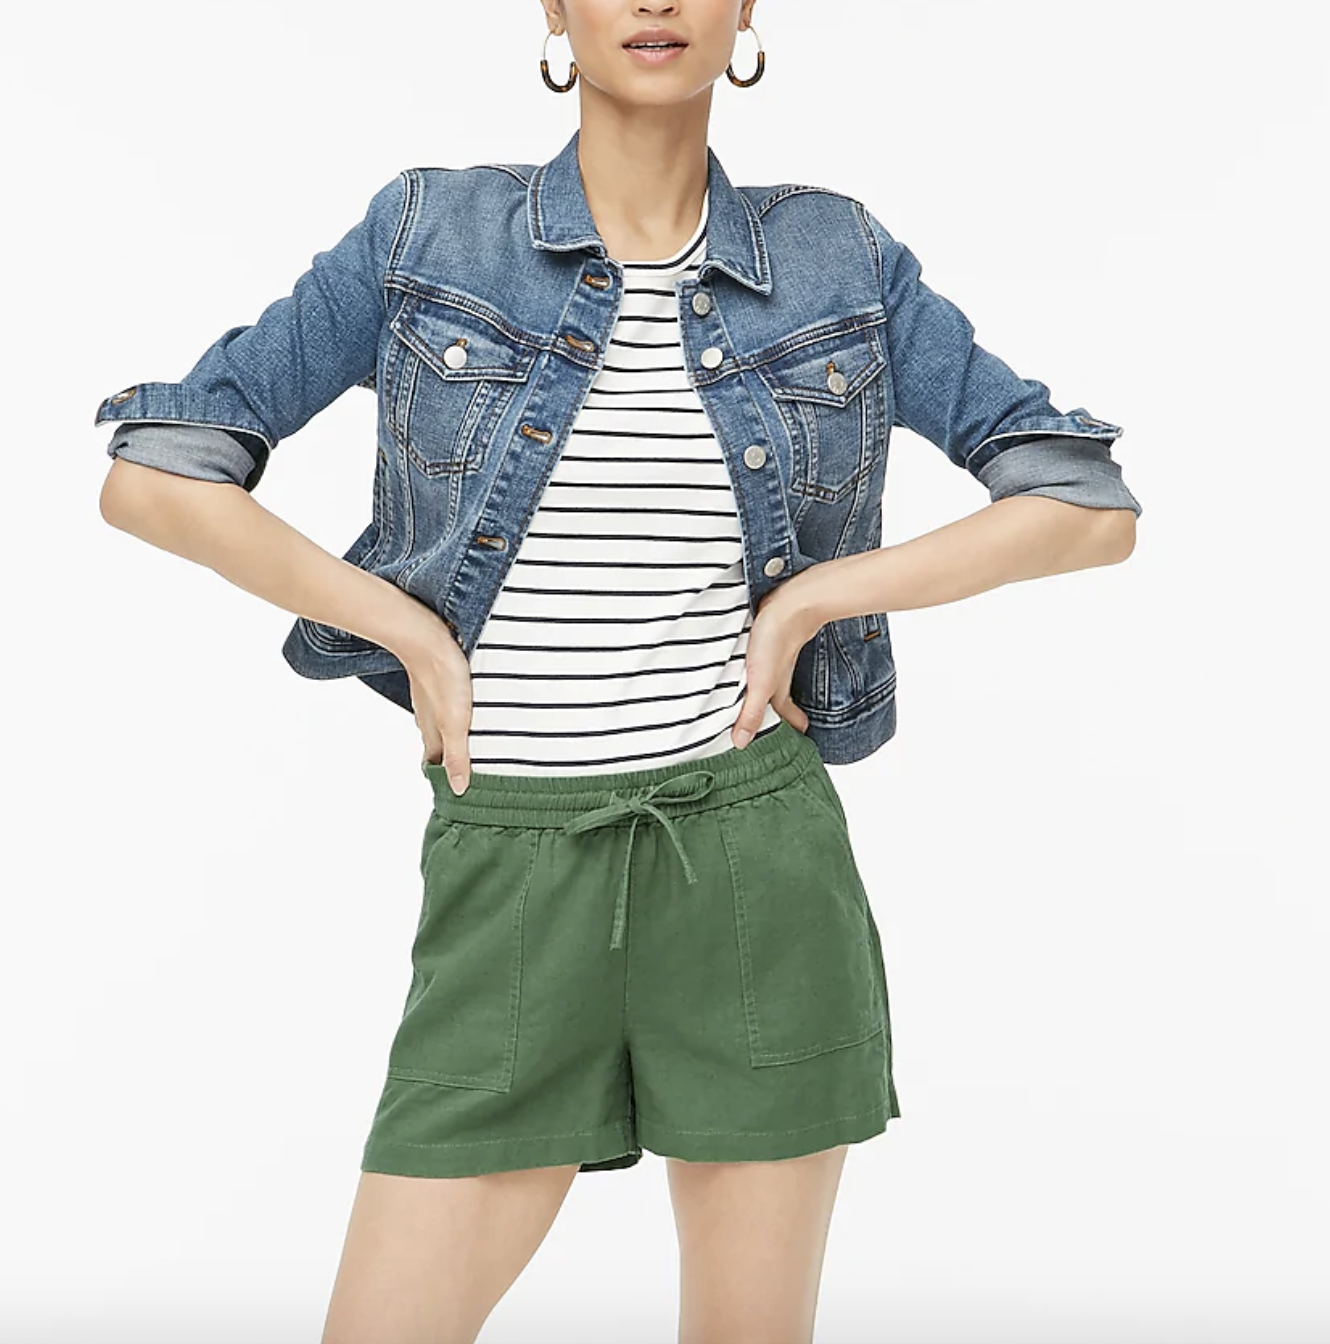 A model wearing the shorts in green